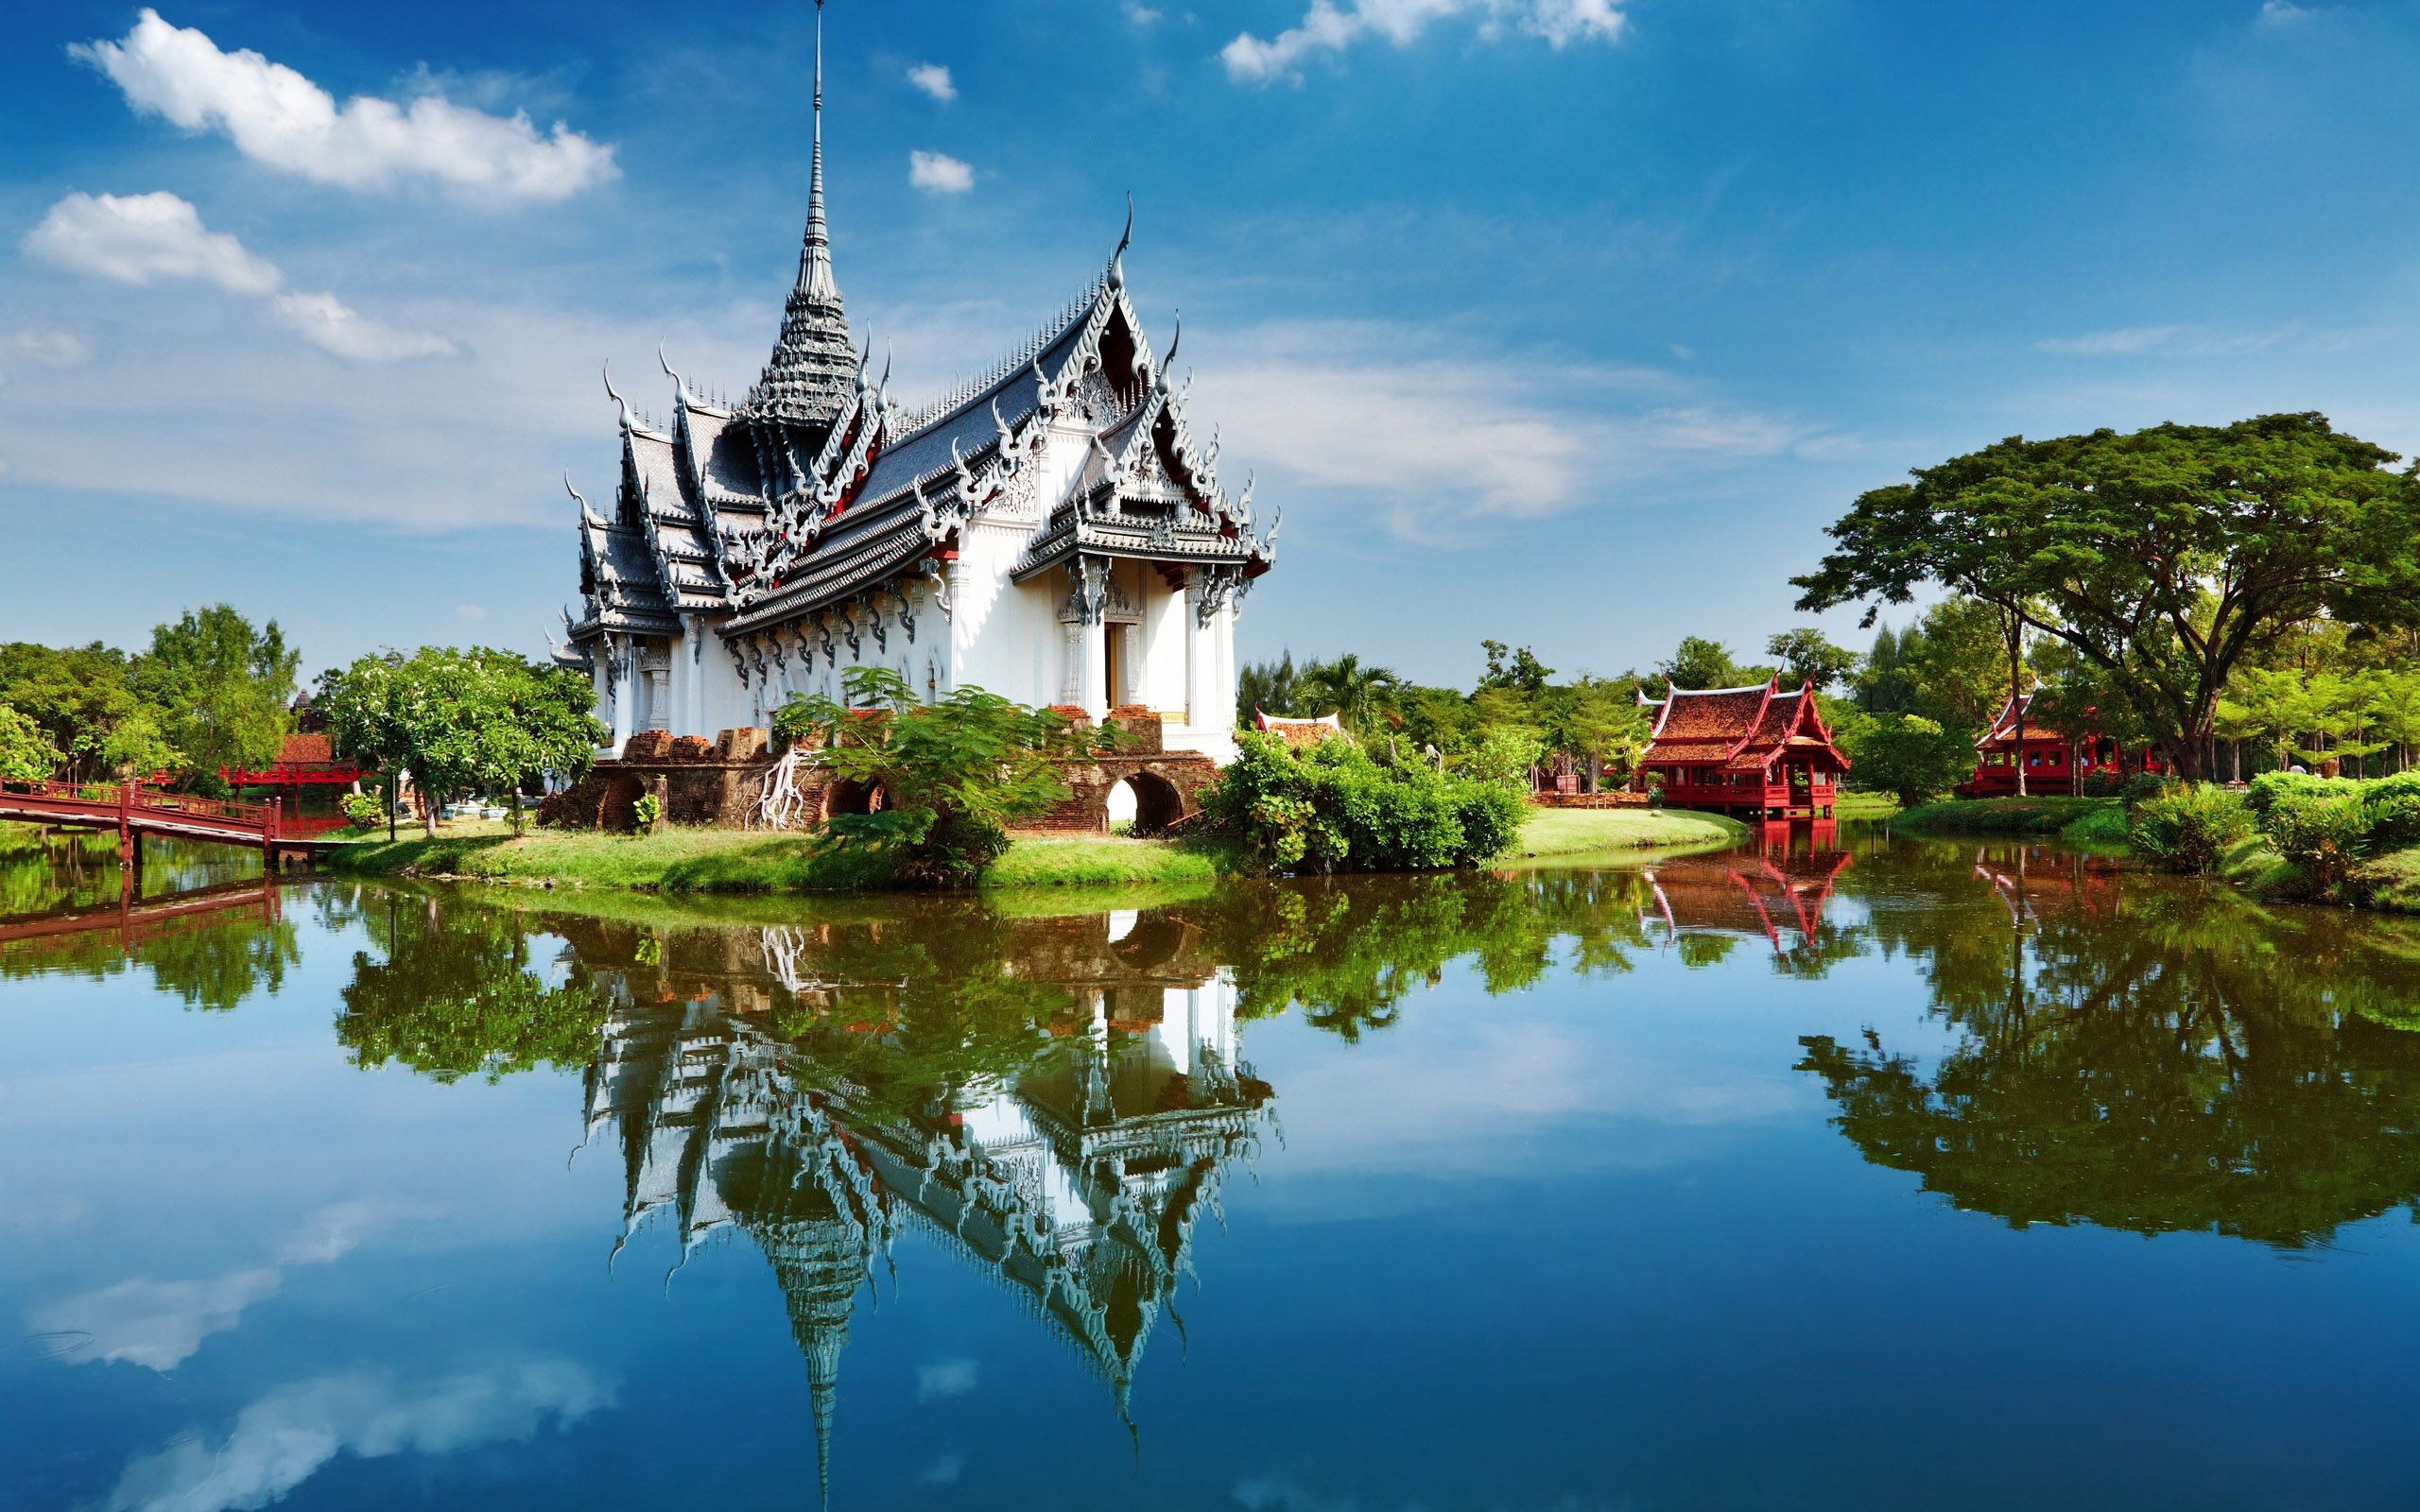 Thailand Packages Best Offers On Thailand Vacation Tours - Thailand vacation packages